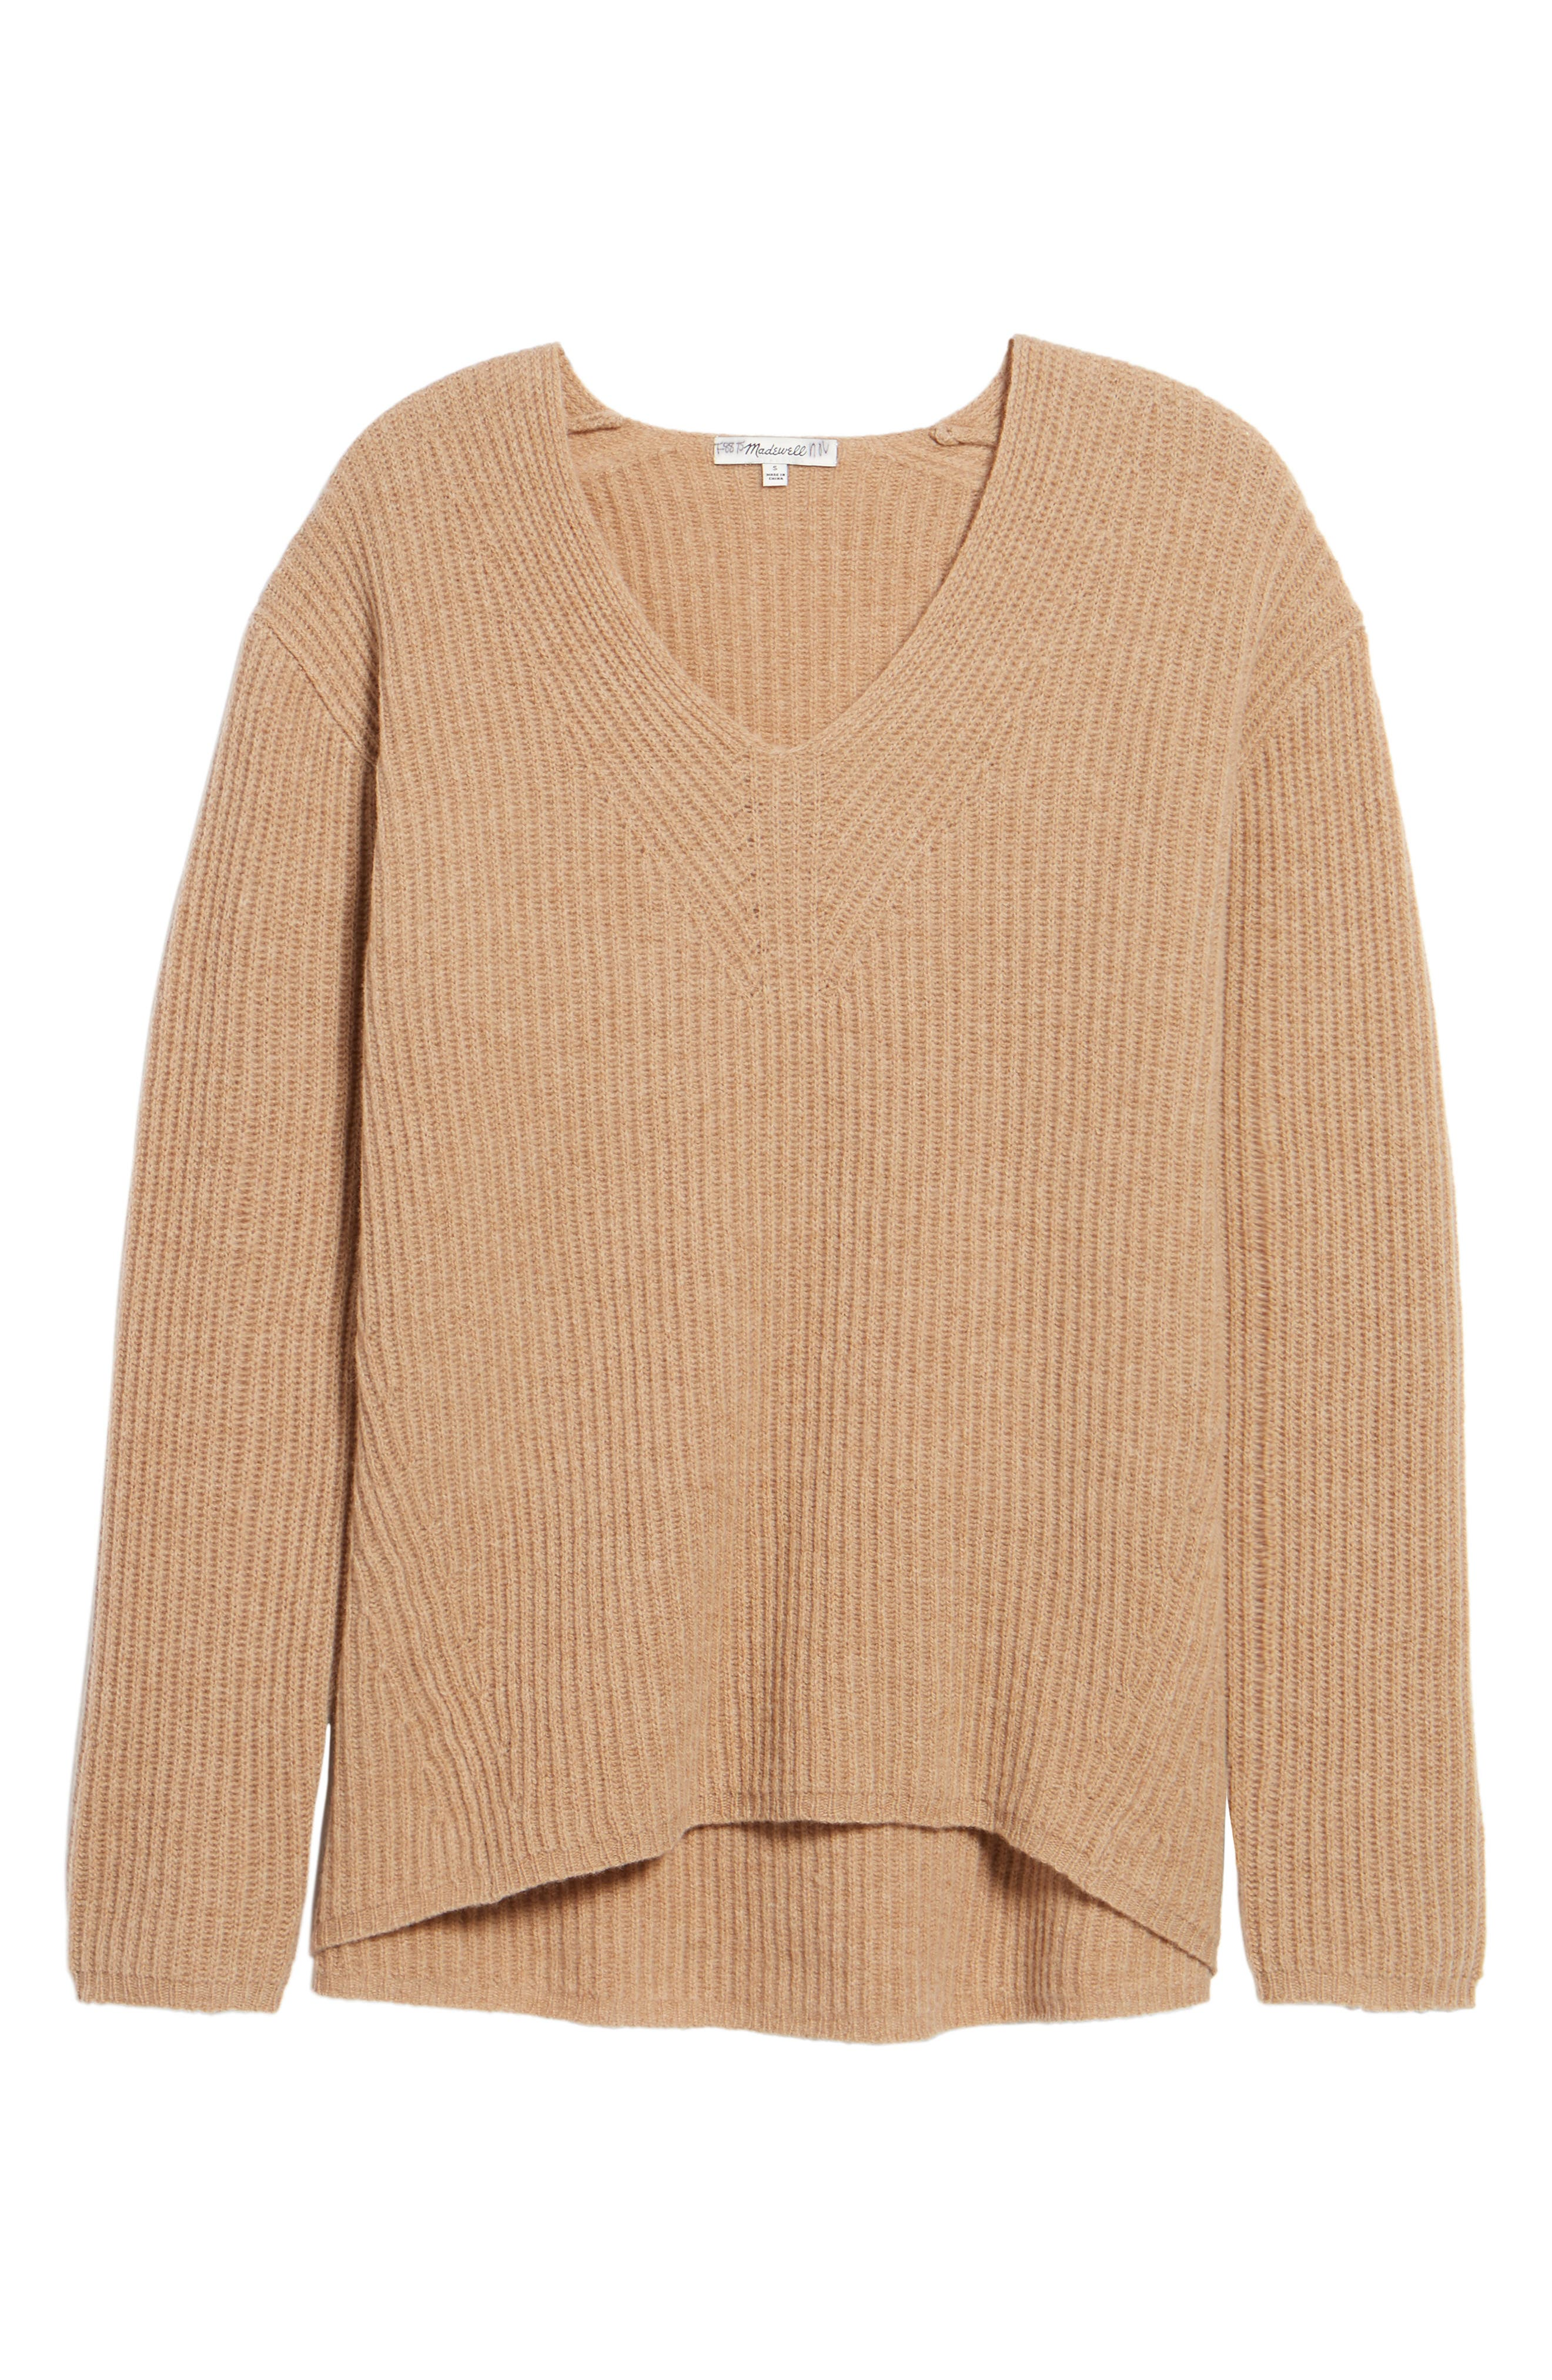 Woodside Pullover Sweater,                             Alternate thumbnail 37, color,